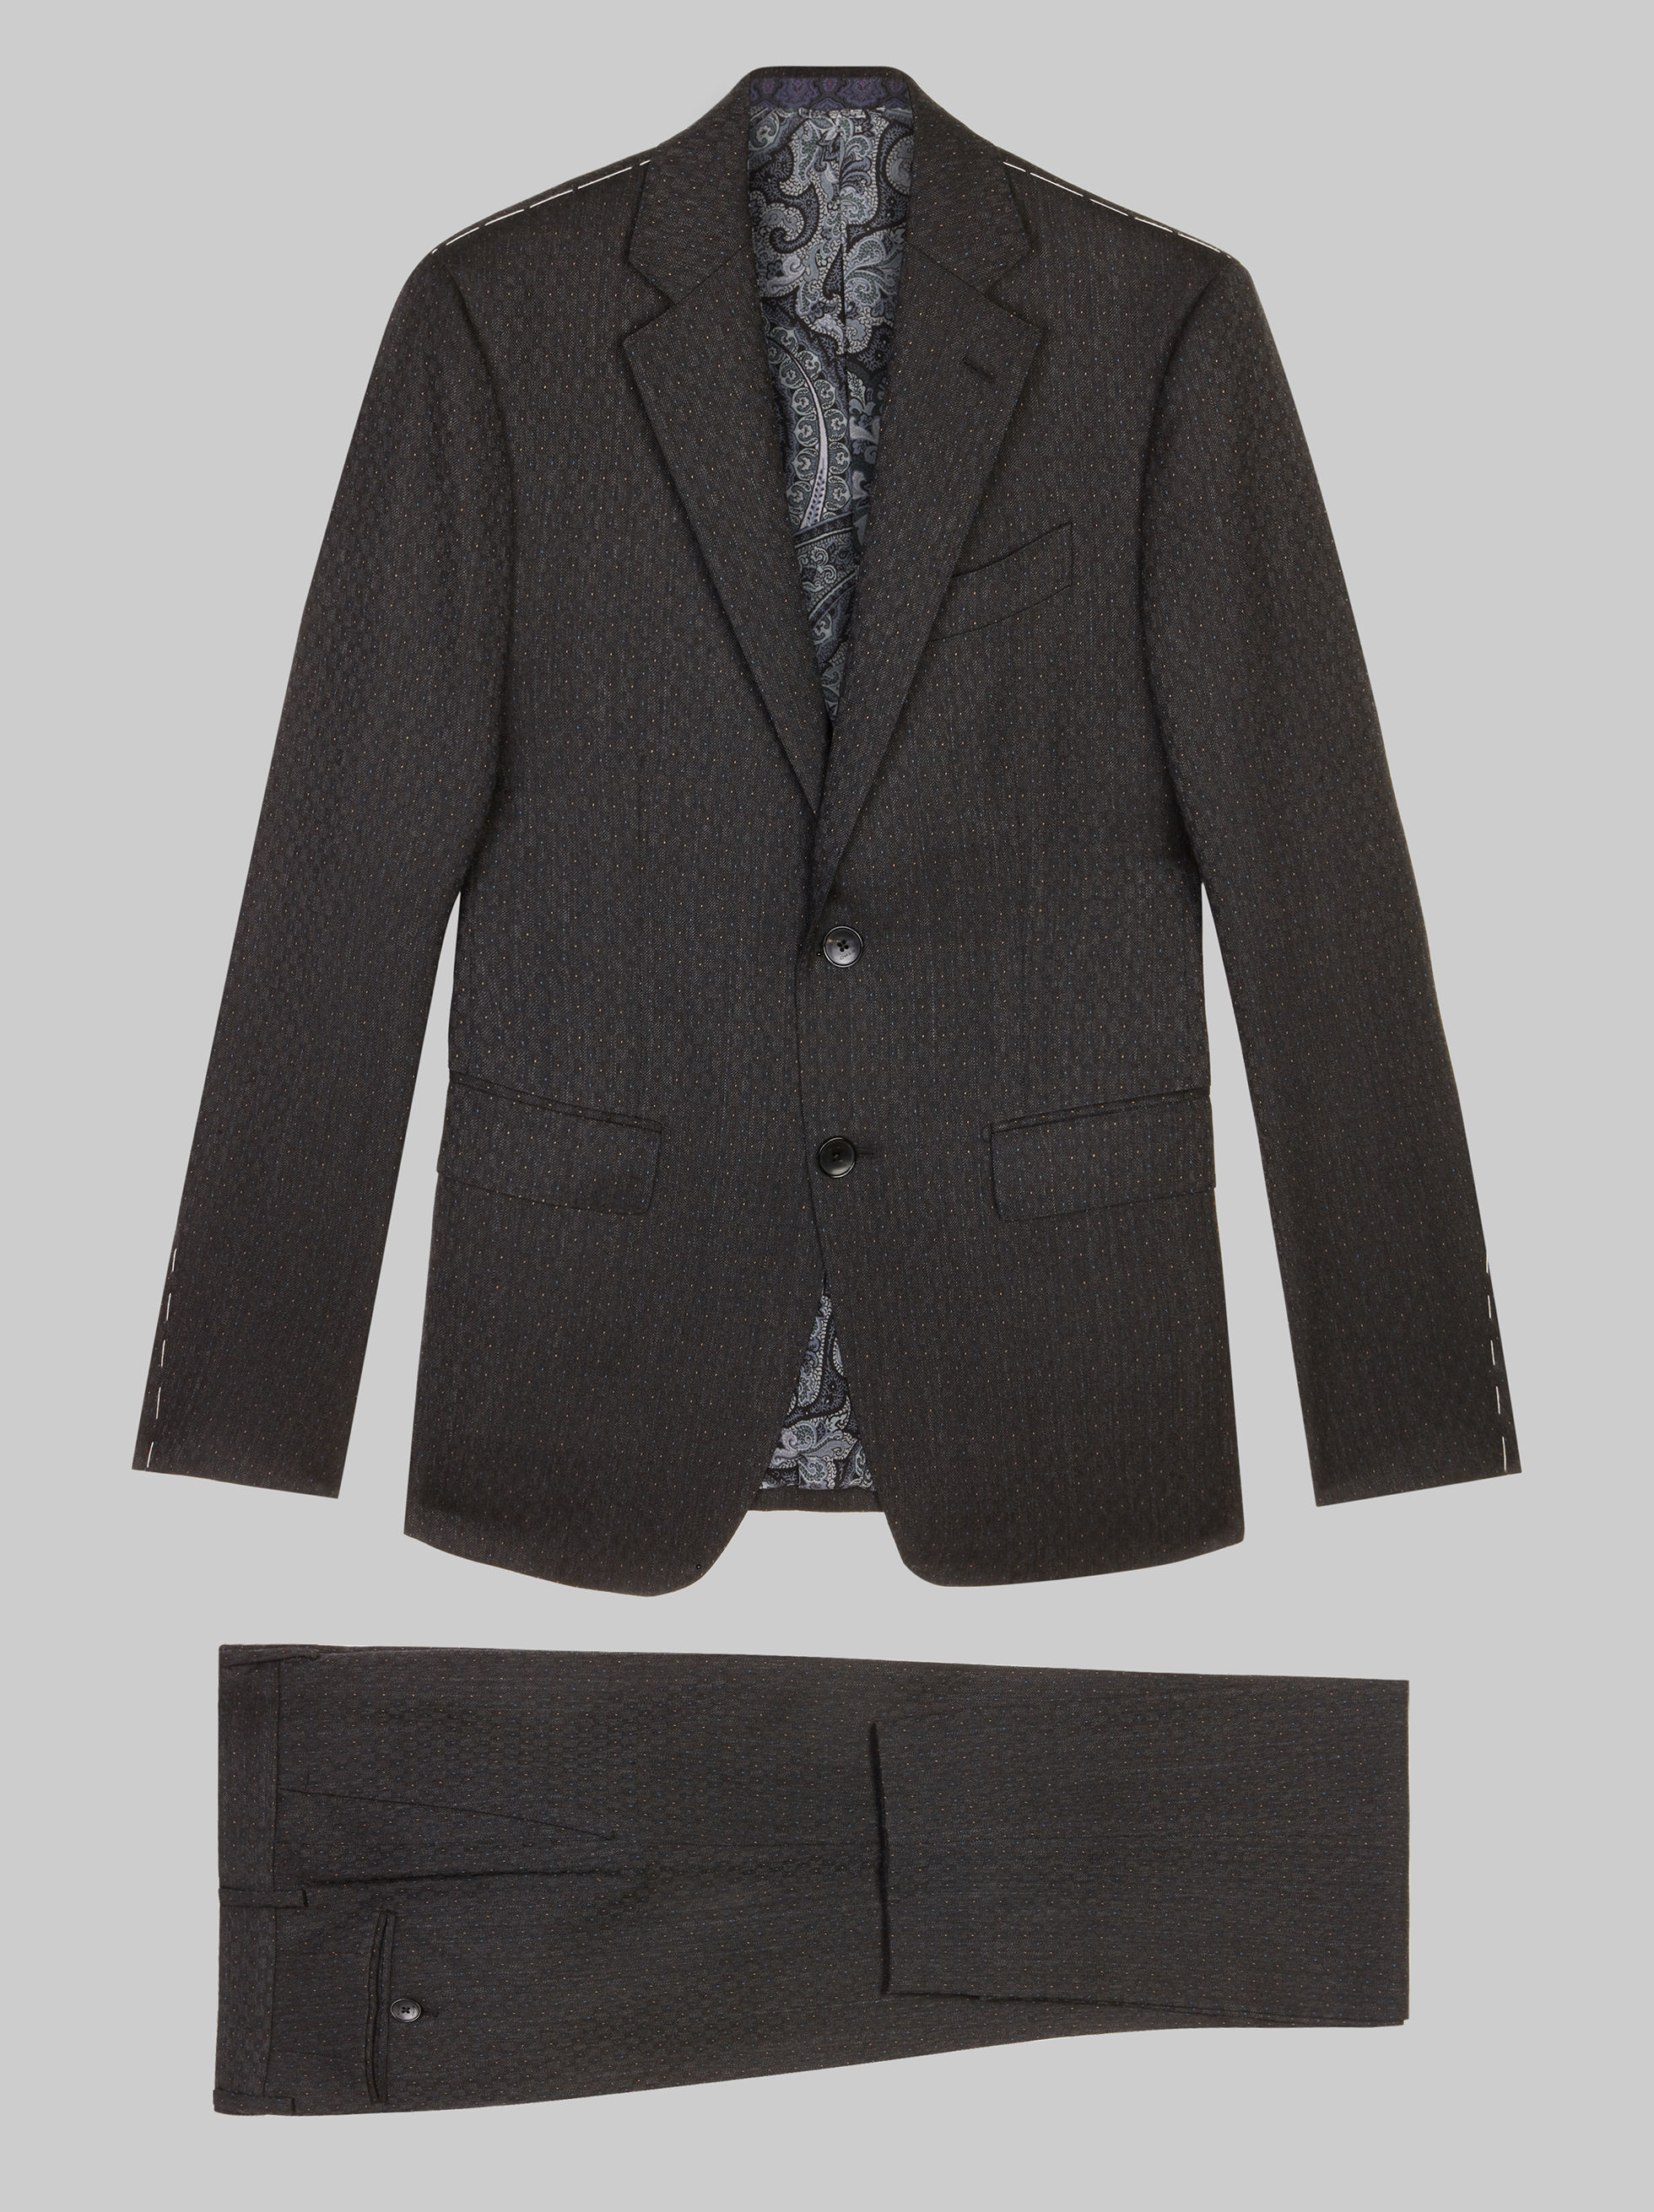 CANVASSED SUIT